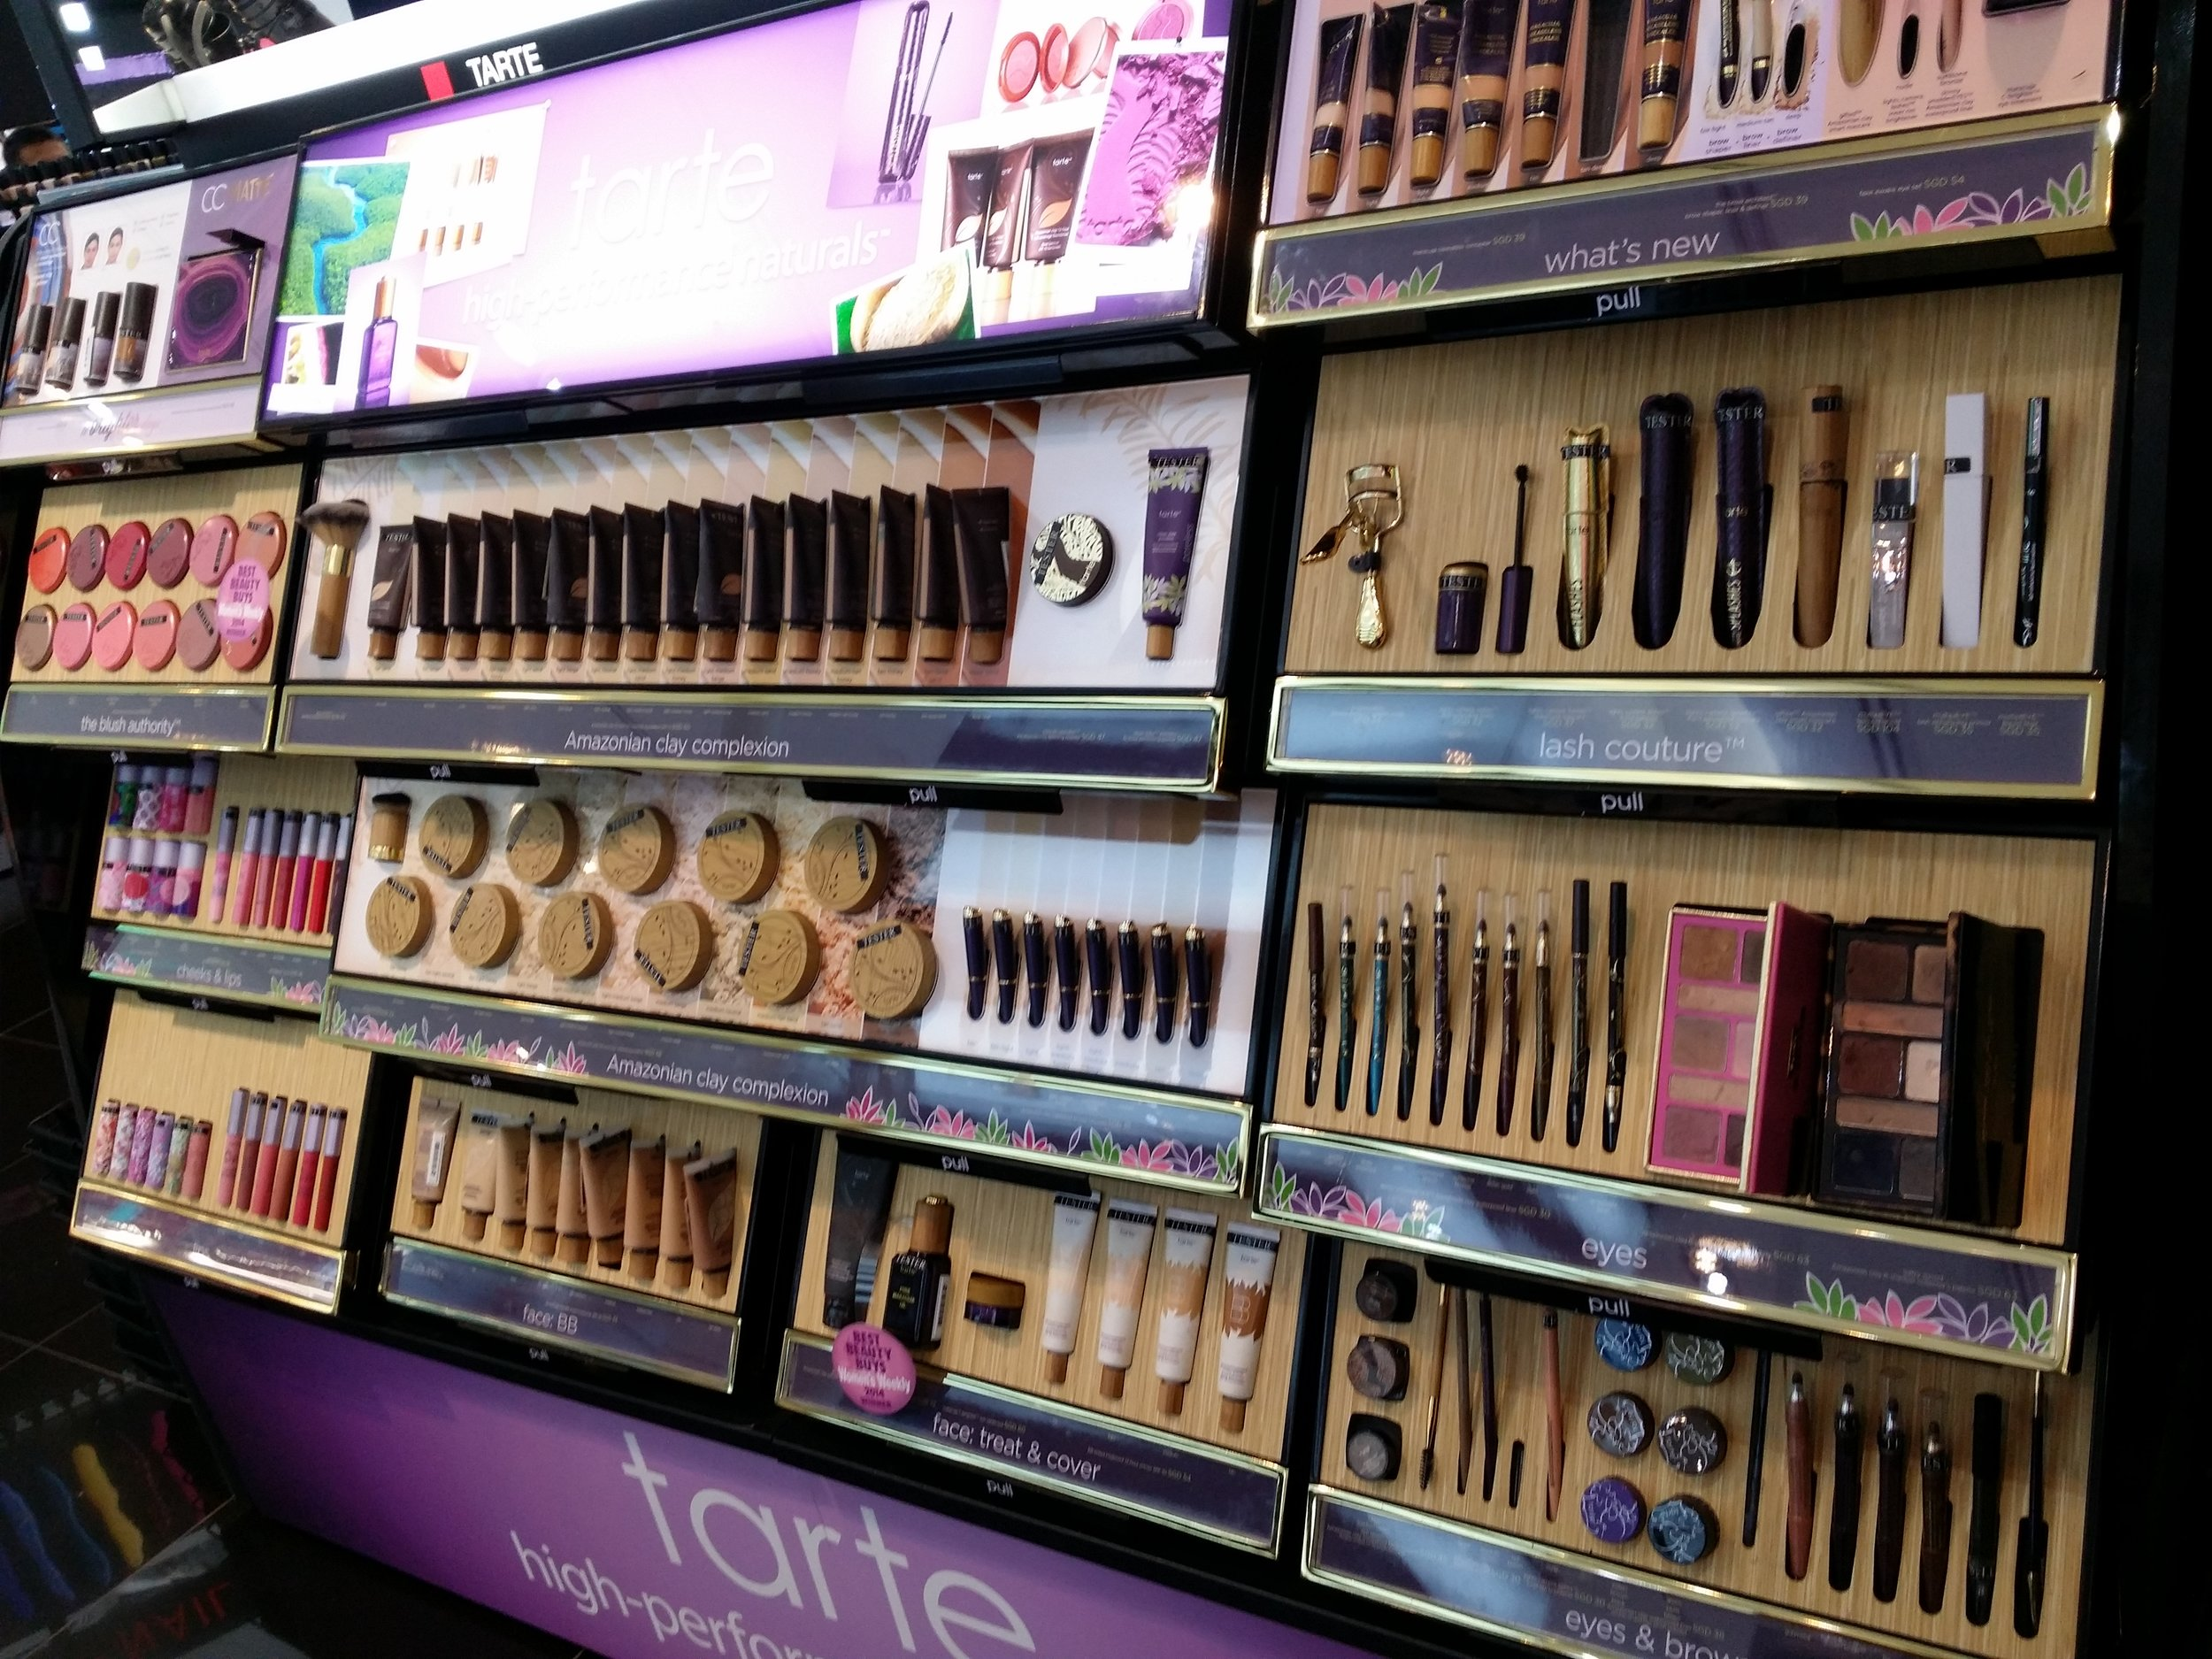 tarte display.jpg